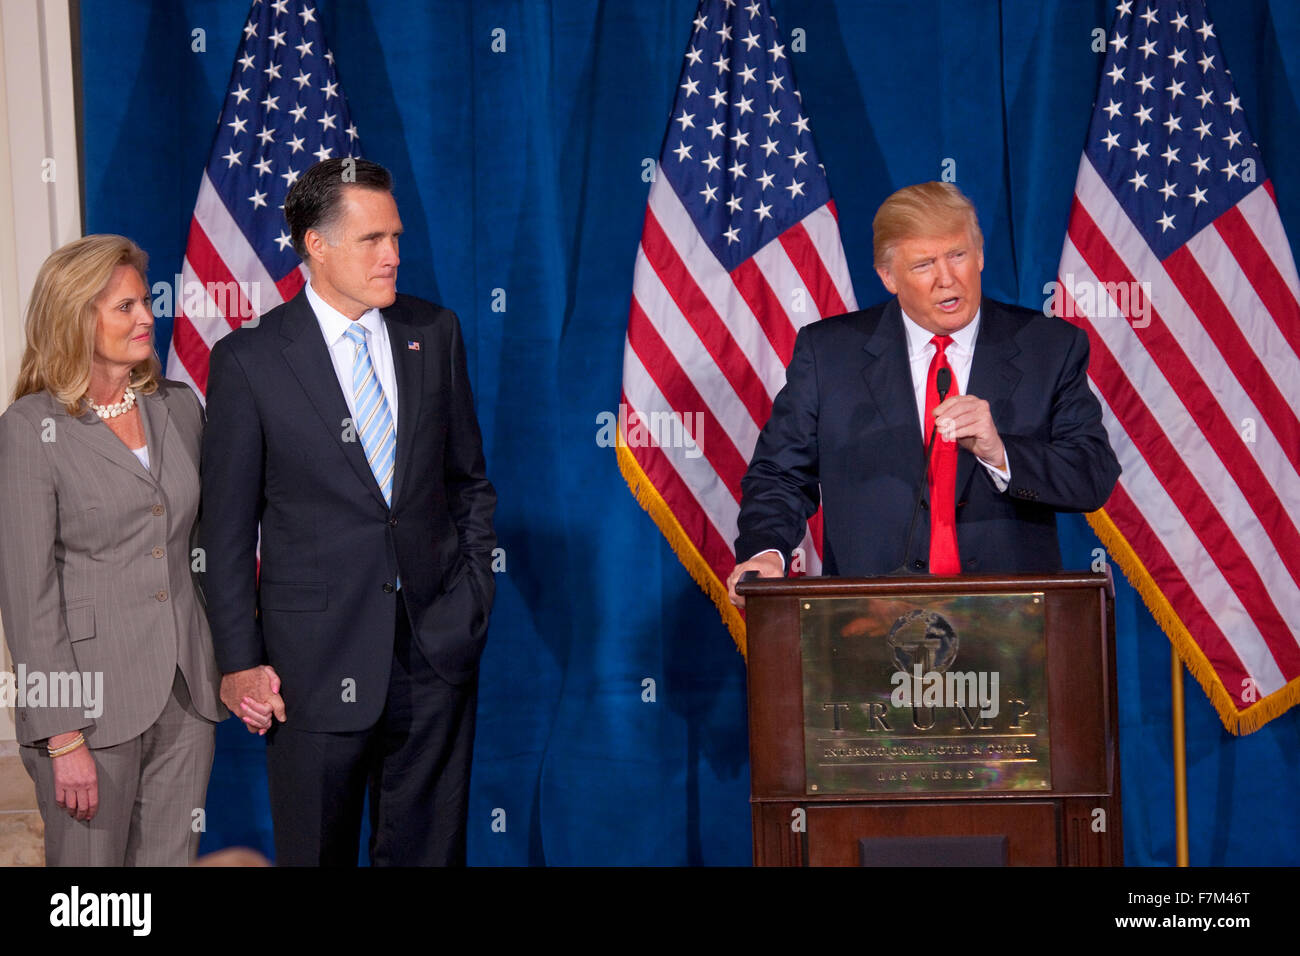 Donald Trump speaks at podium with Republican presidential candidate Mitt Romney after Trump endorsed Romney's presidential - Stock Image